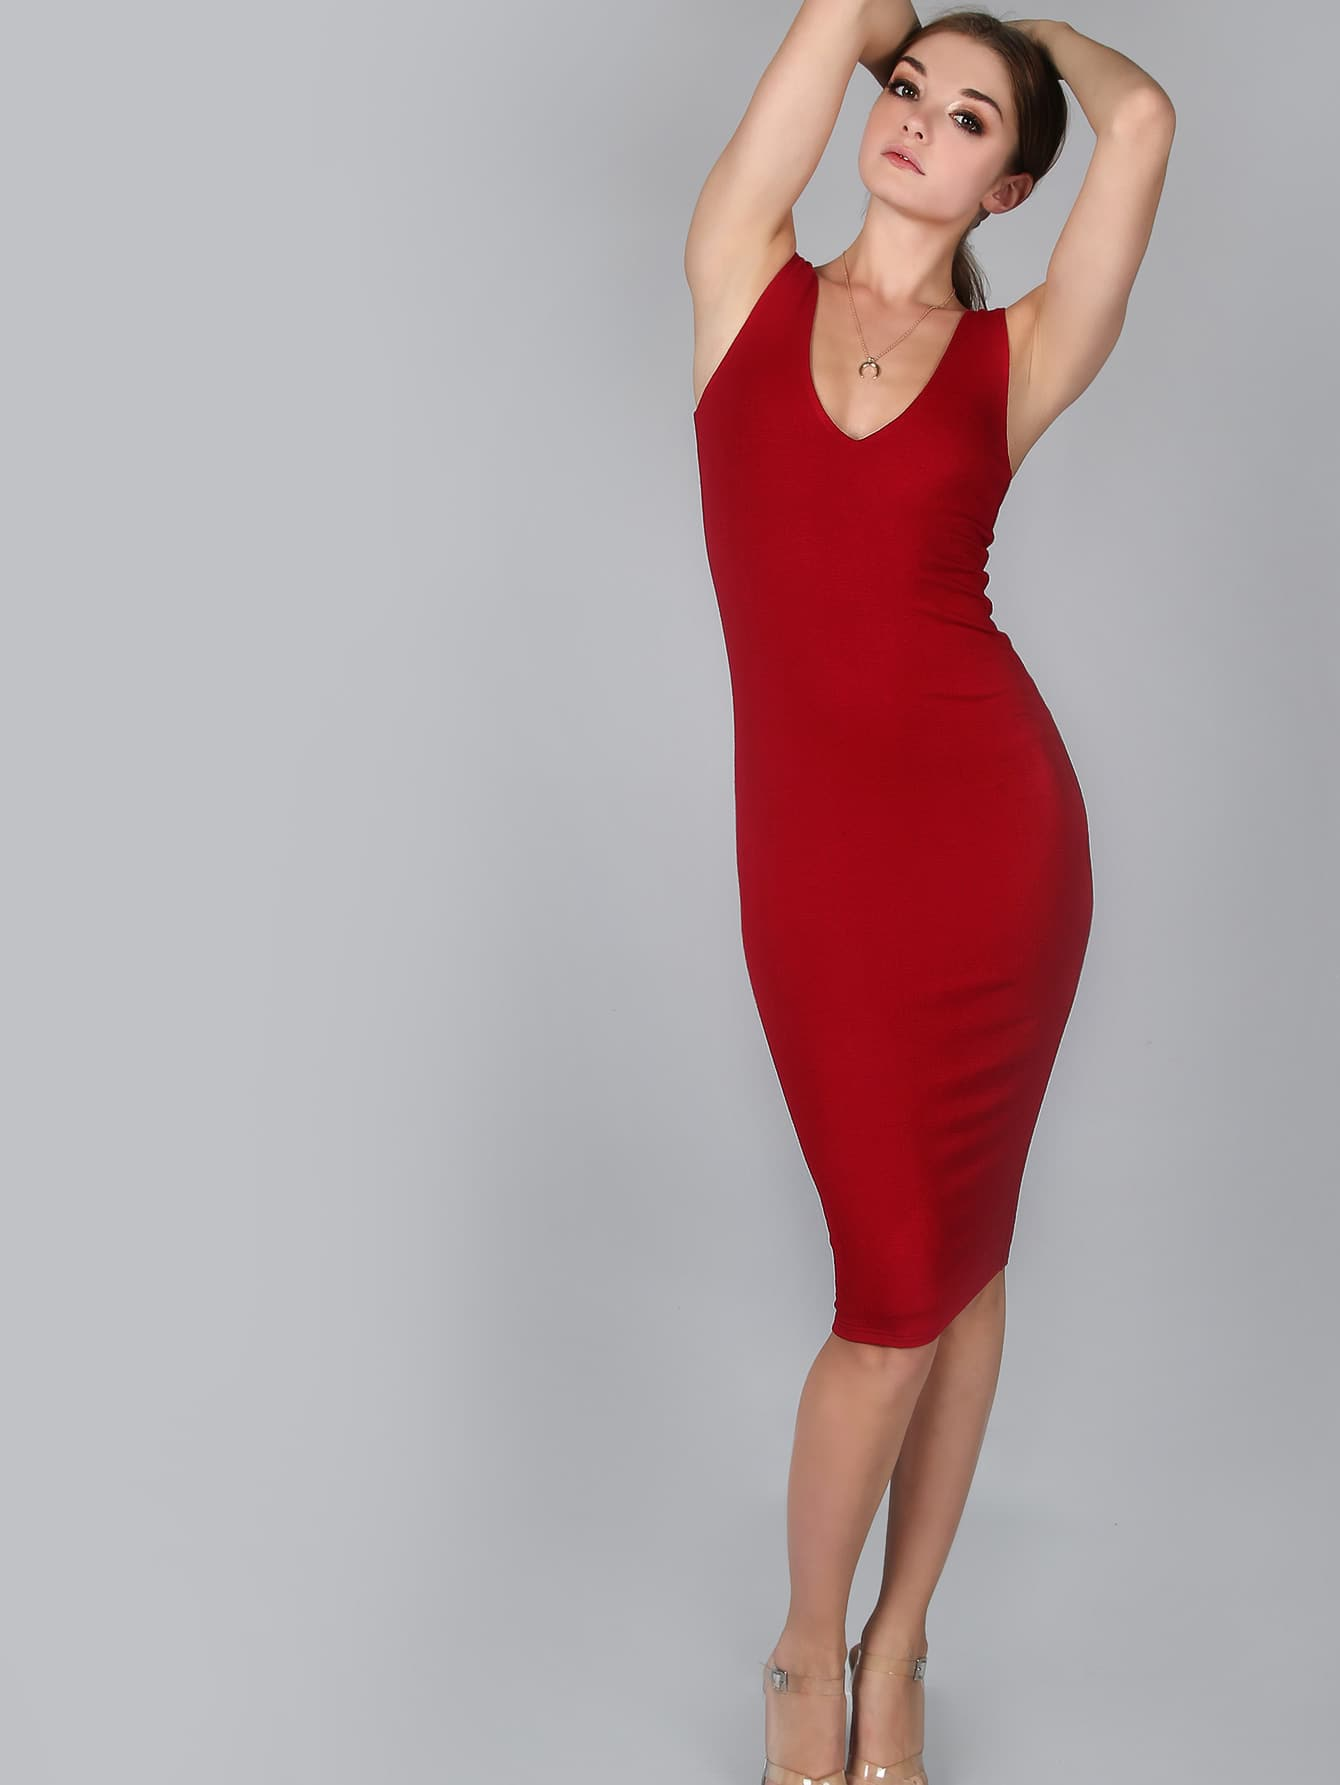 Burgundy Double Scoop Neck Tank DressBurgundy Double Scoop Neck Tank Dress<br><br>color: Burgundy<br>size: L,M,S,XS